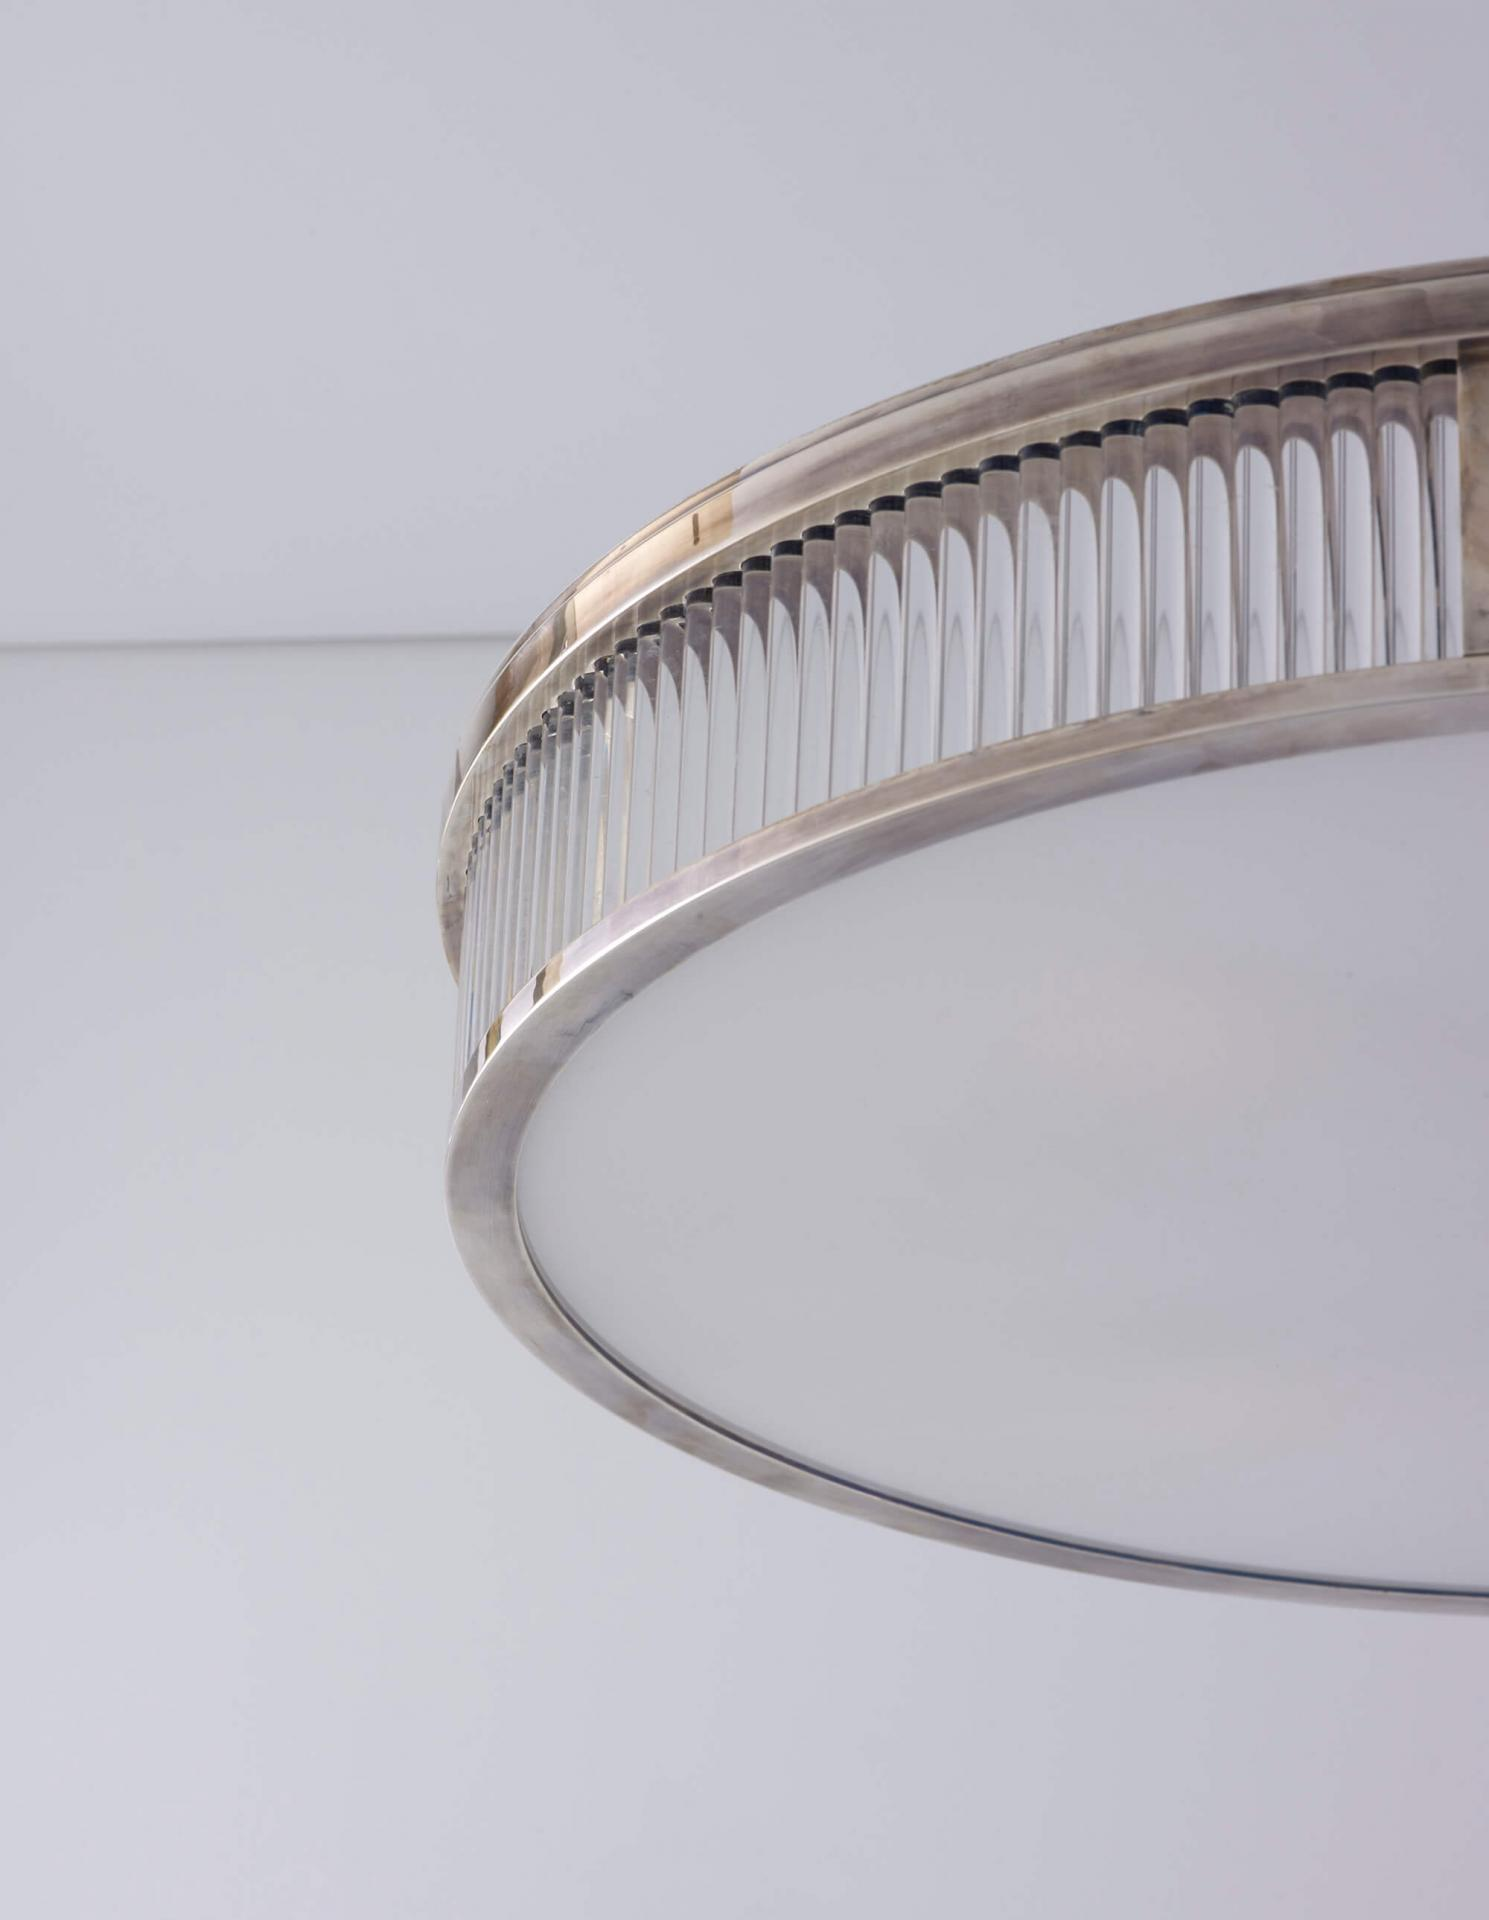 Large Round Odeon Plafonnier - Art Deco inspired lighting by Collier Webb